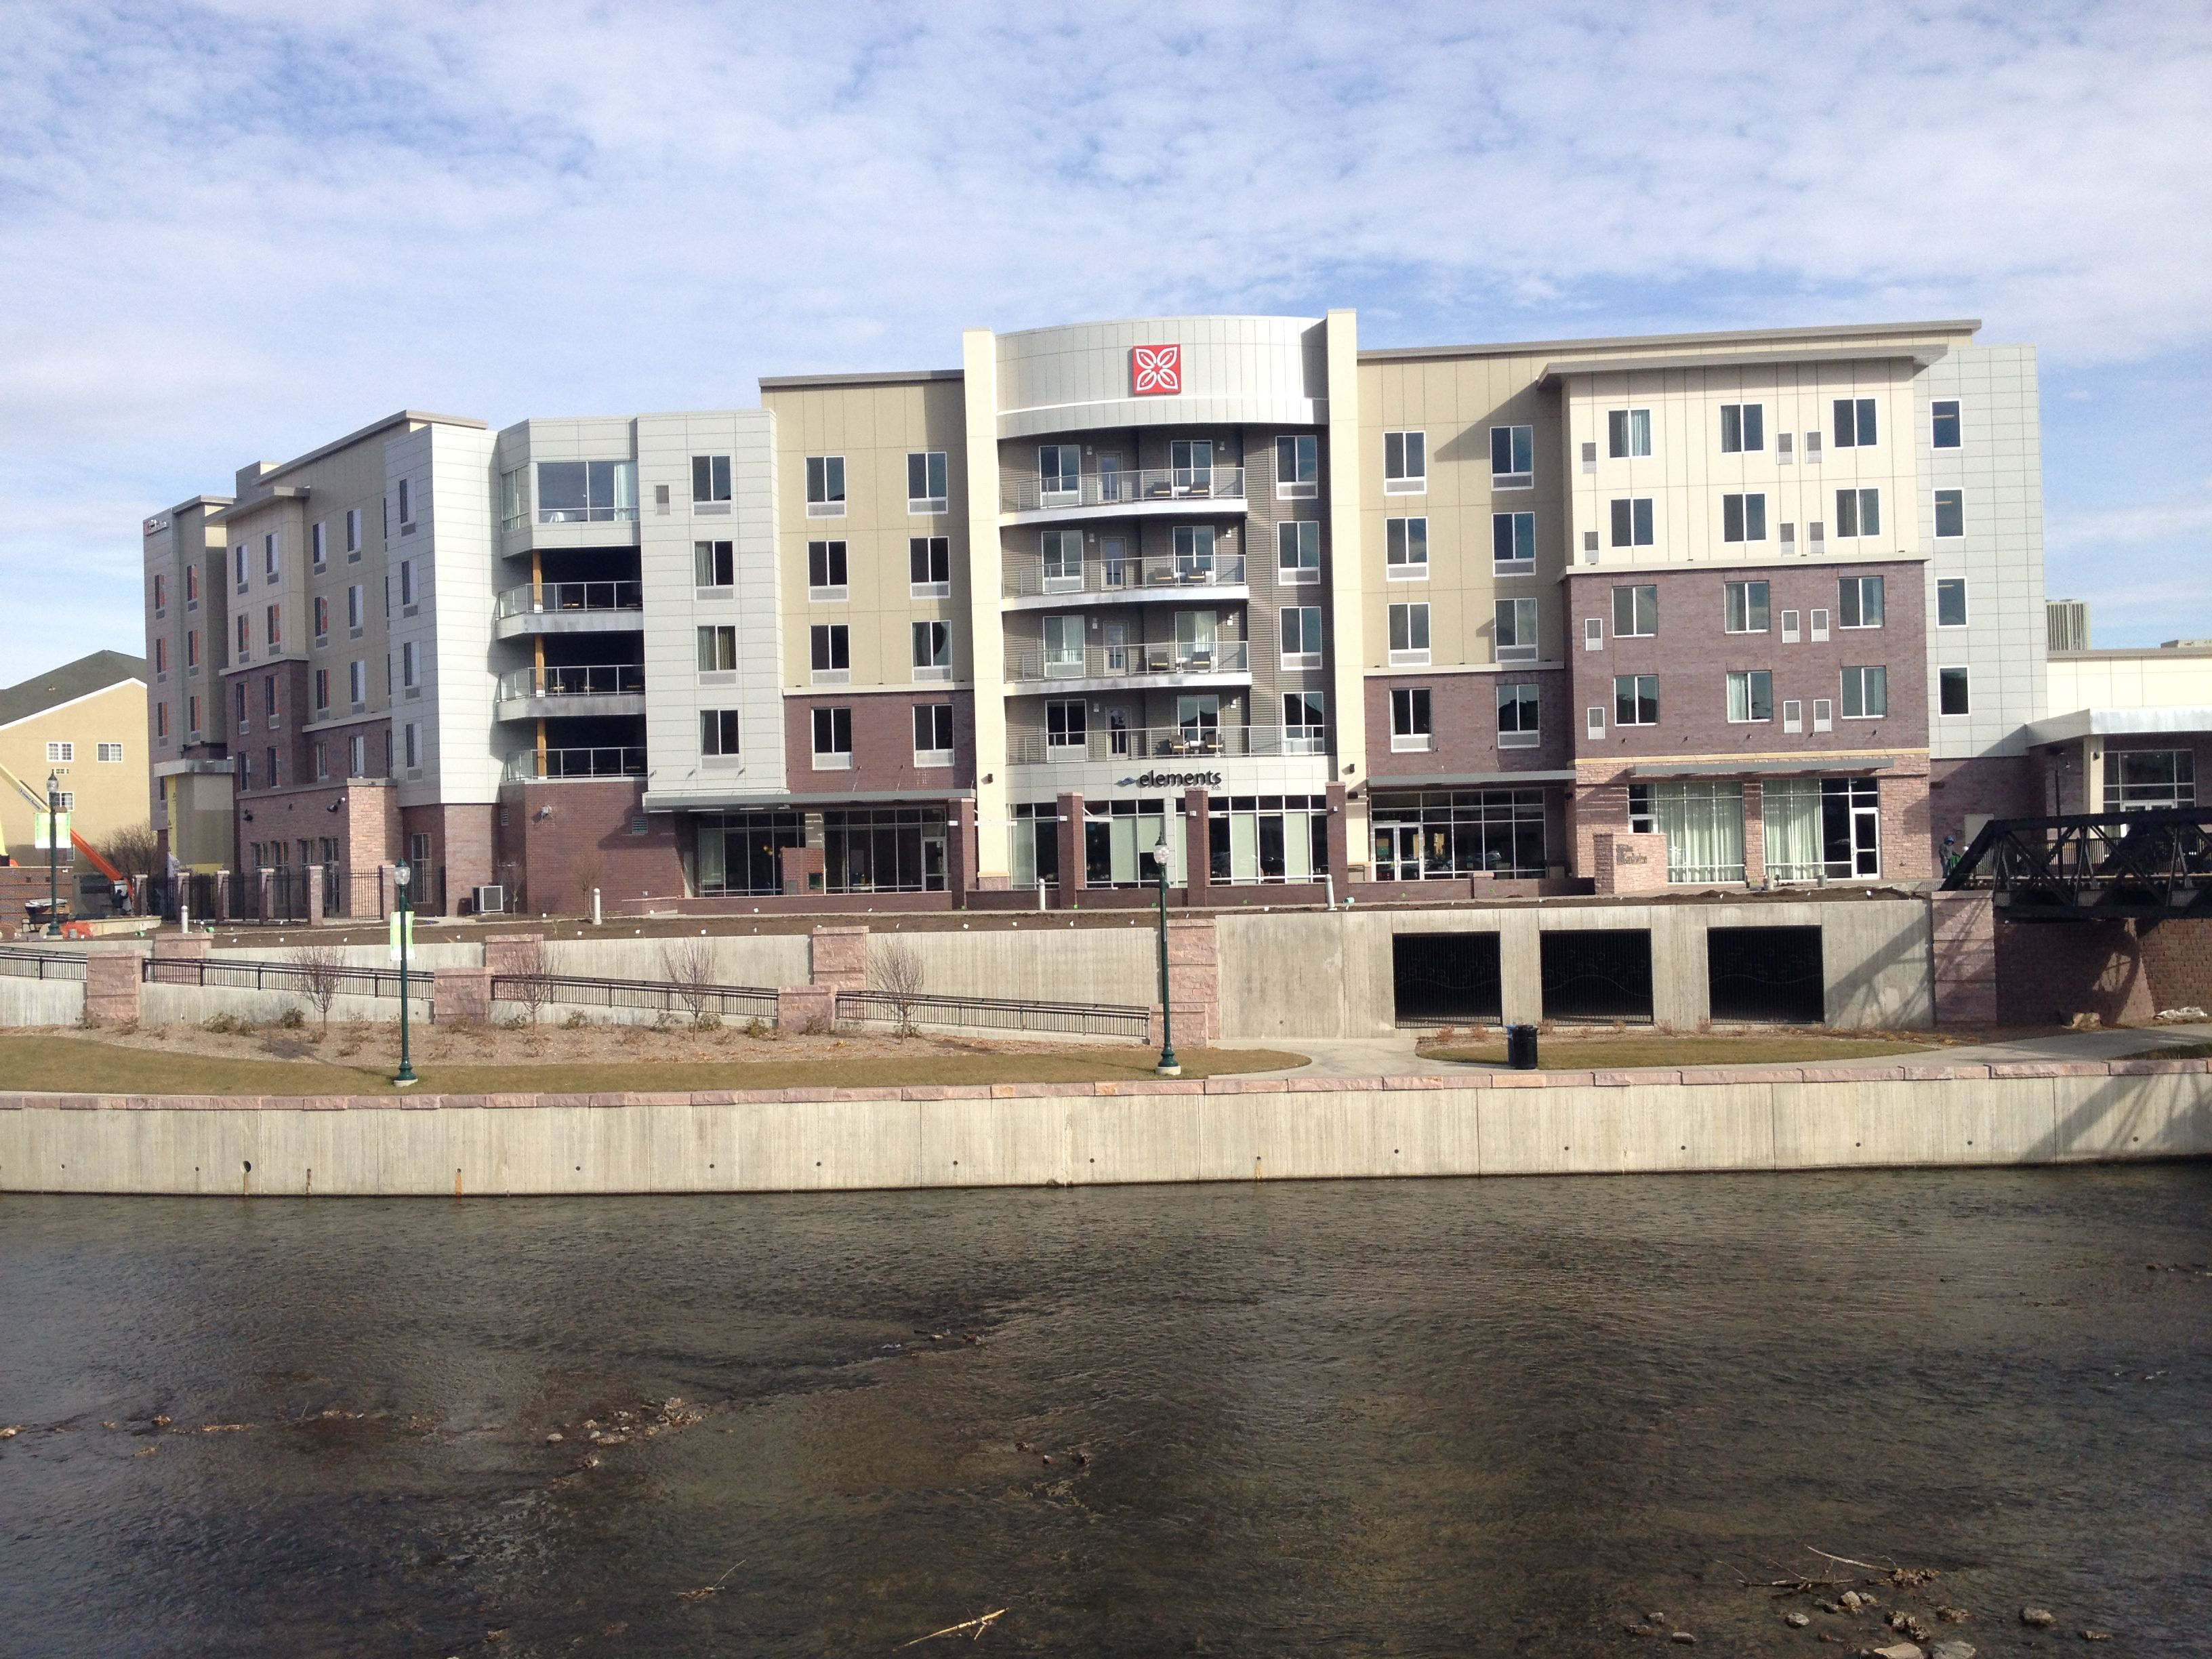 After Nearly A Year Of Work, The New Hilton Garden Inn In Downtown Sioux  Falls